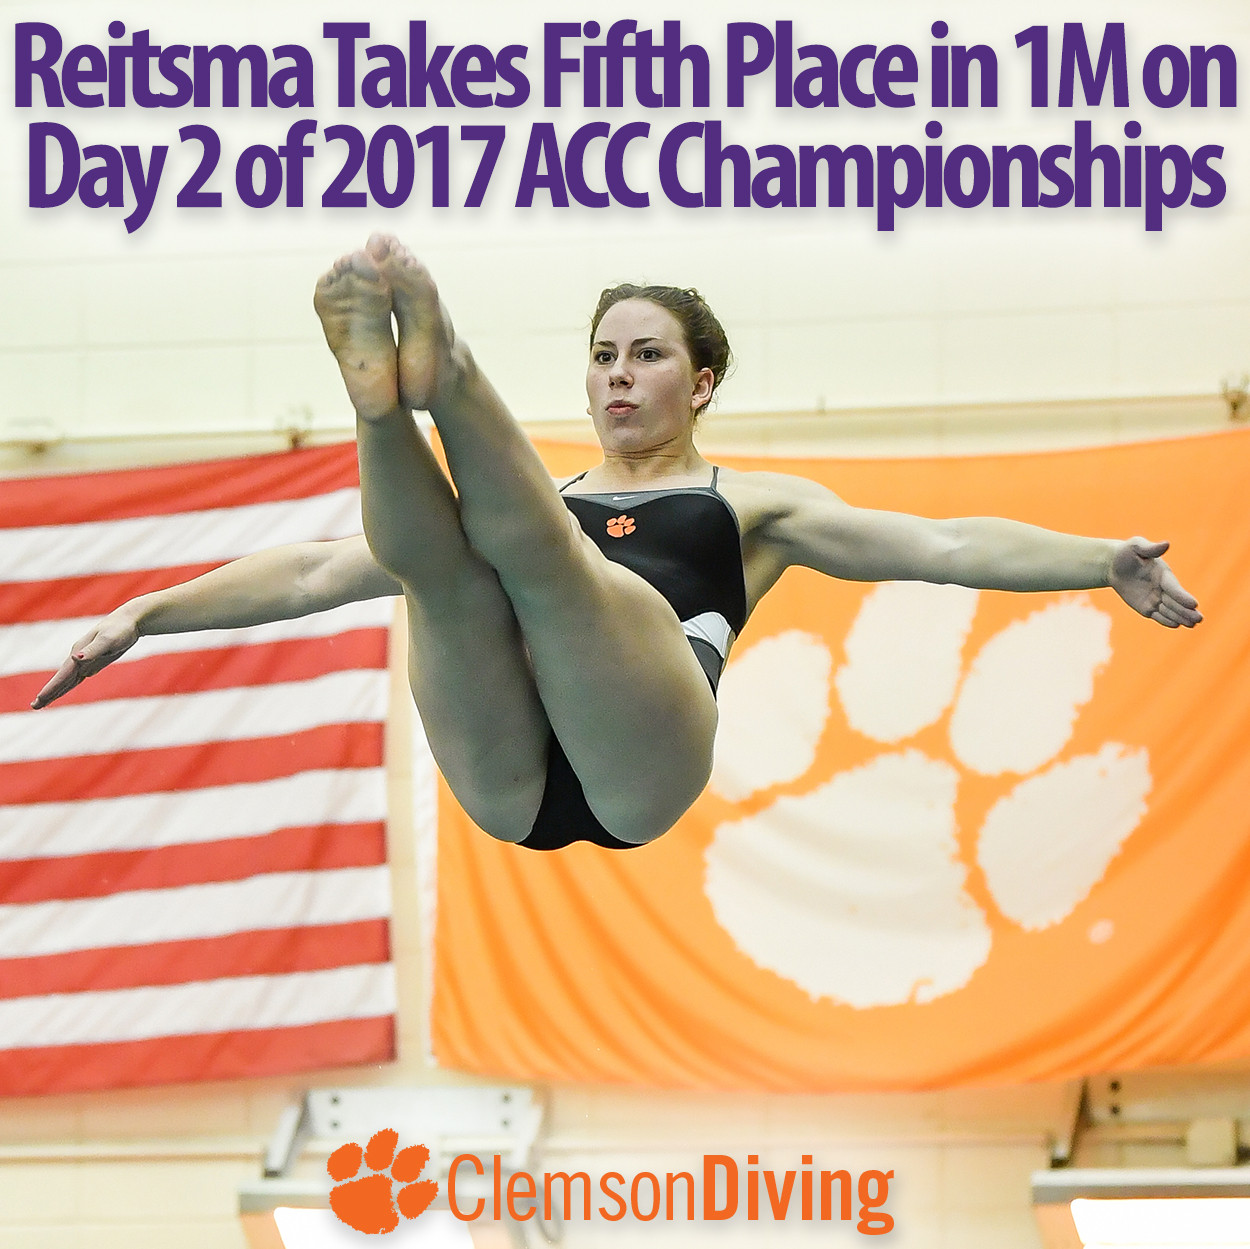 Reitsma Places Fifth in 1M at ACC Championships Tuesday, Best Finish in Recent Program History